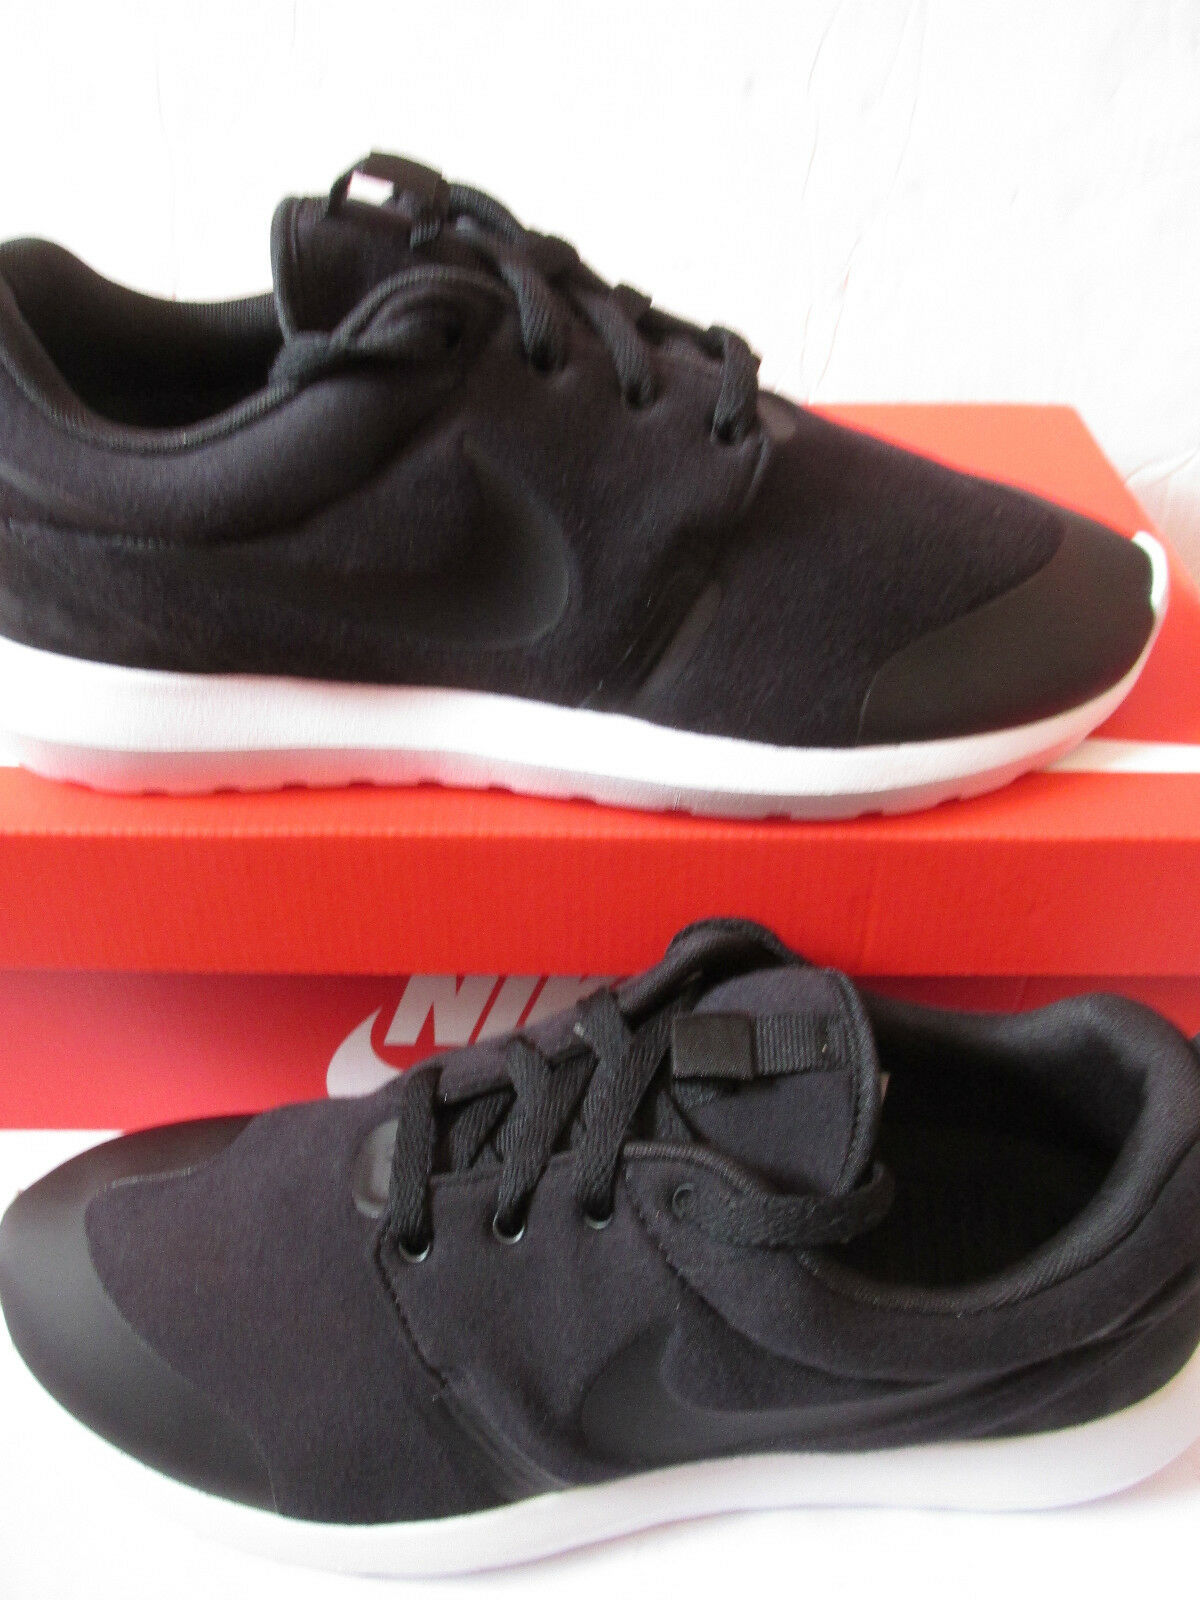 nike roshe NM TP mens trainers 749658 001 sneakers shoes